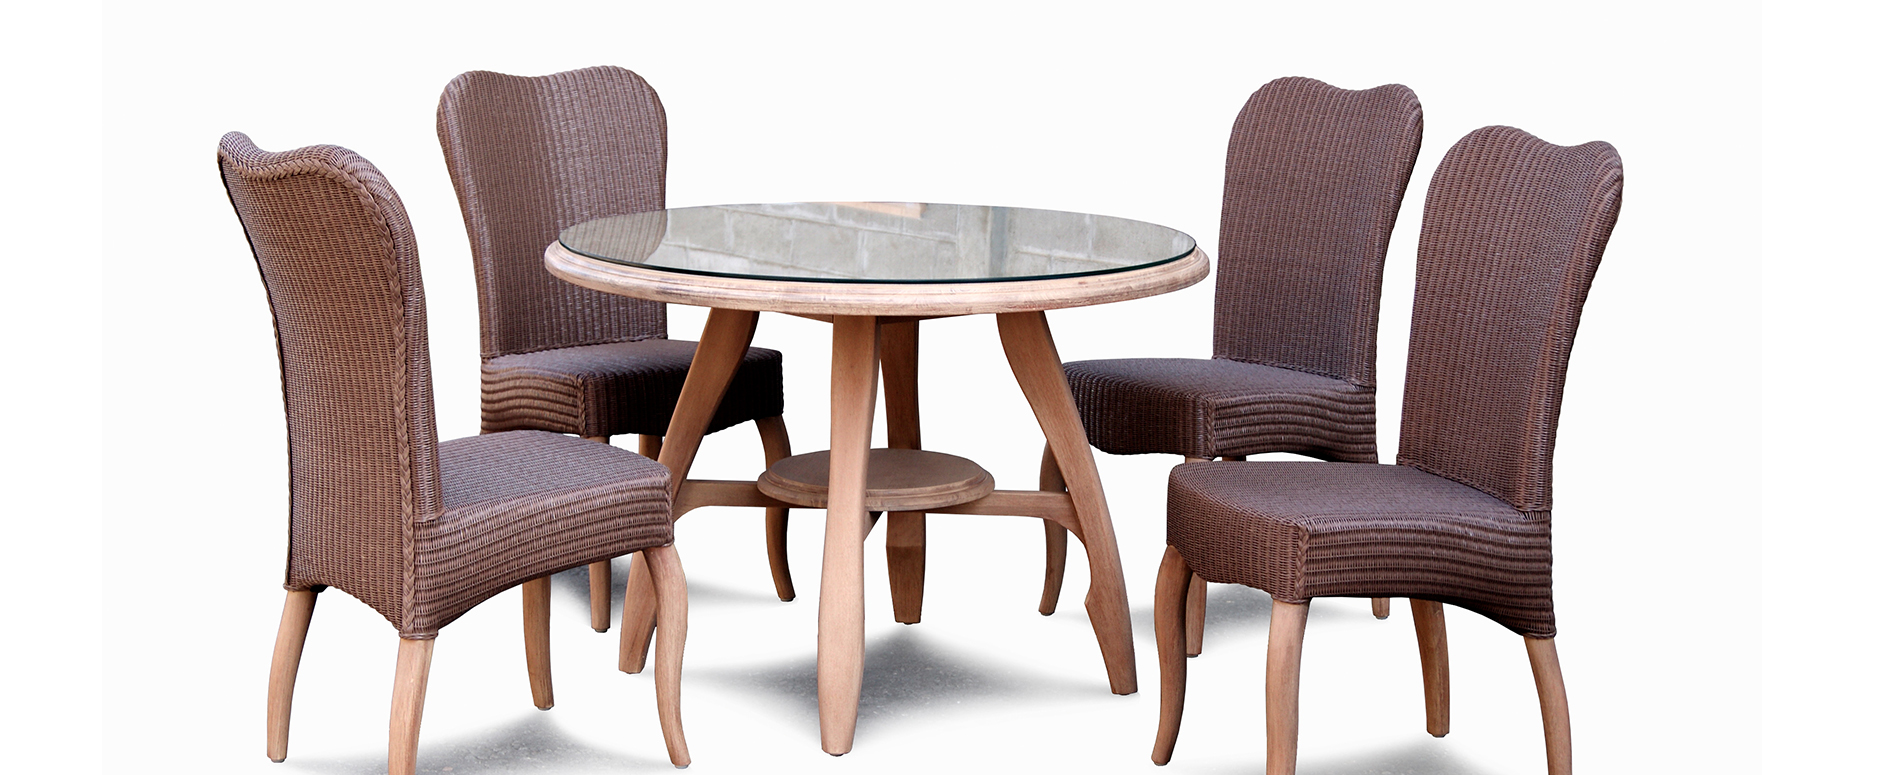 Dining set ( Side chair E15-WRL 0601 & Round dining table E15-W 0801 ) - SLIDE 2